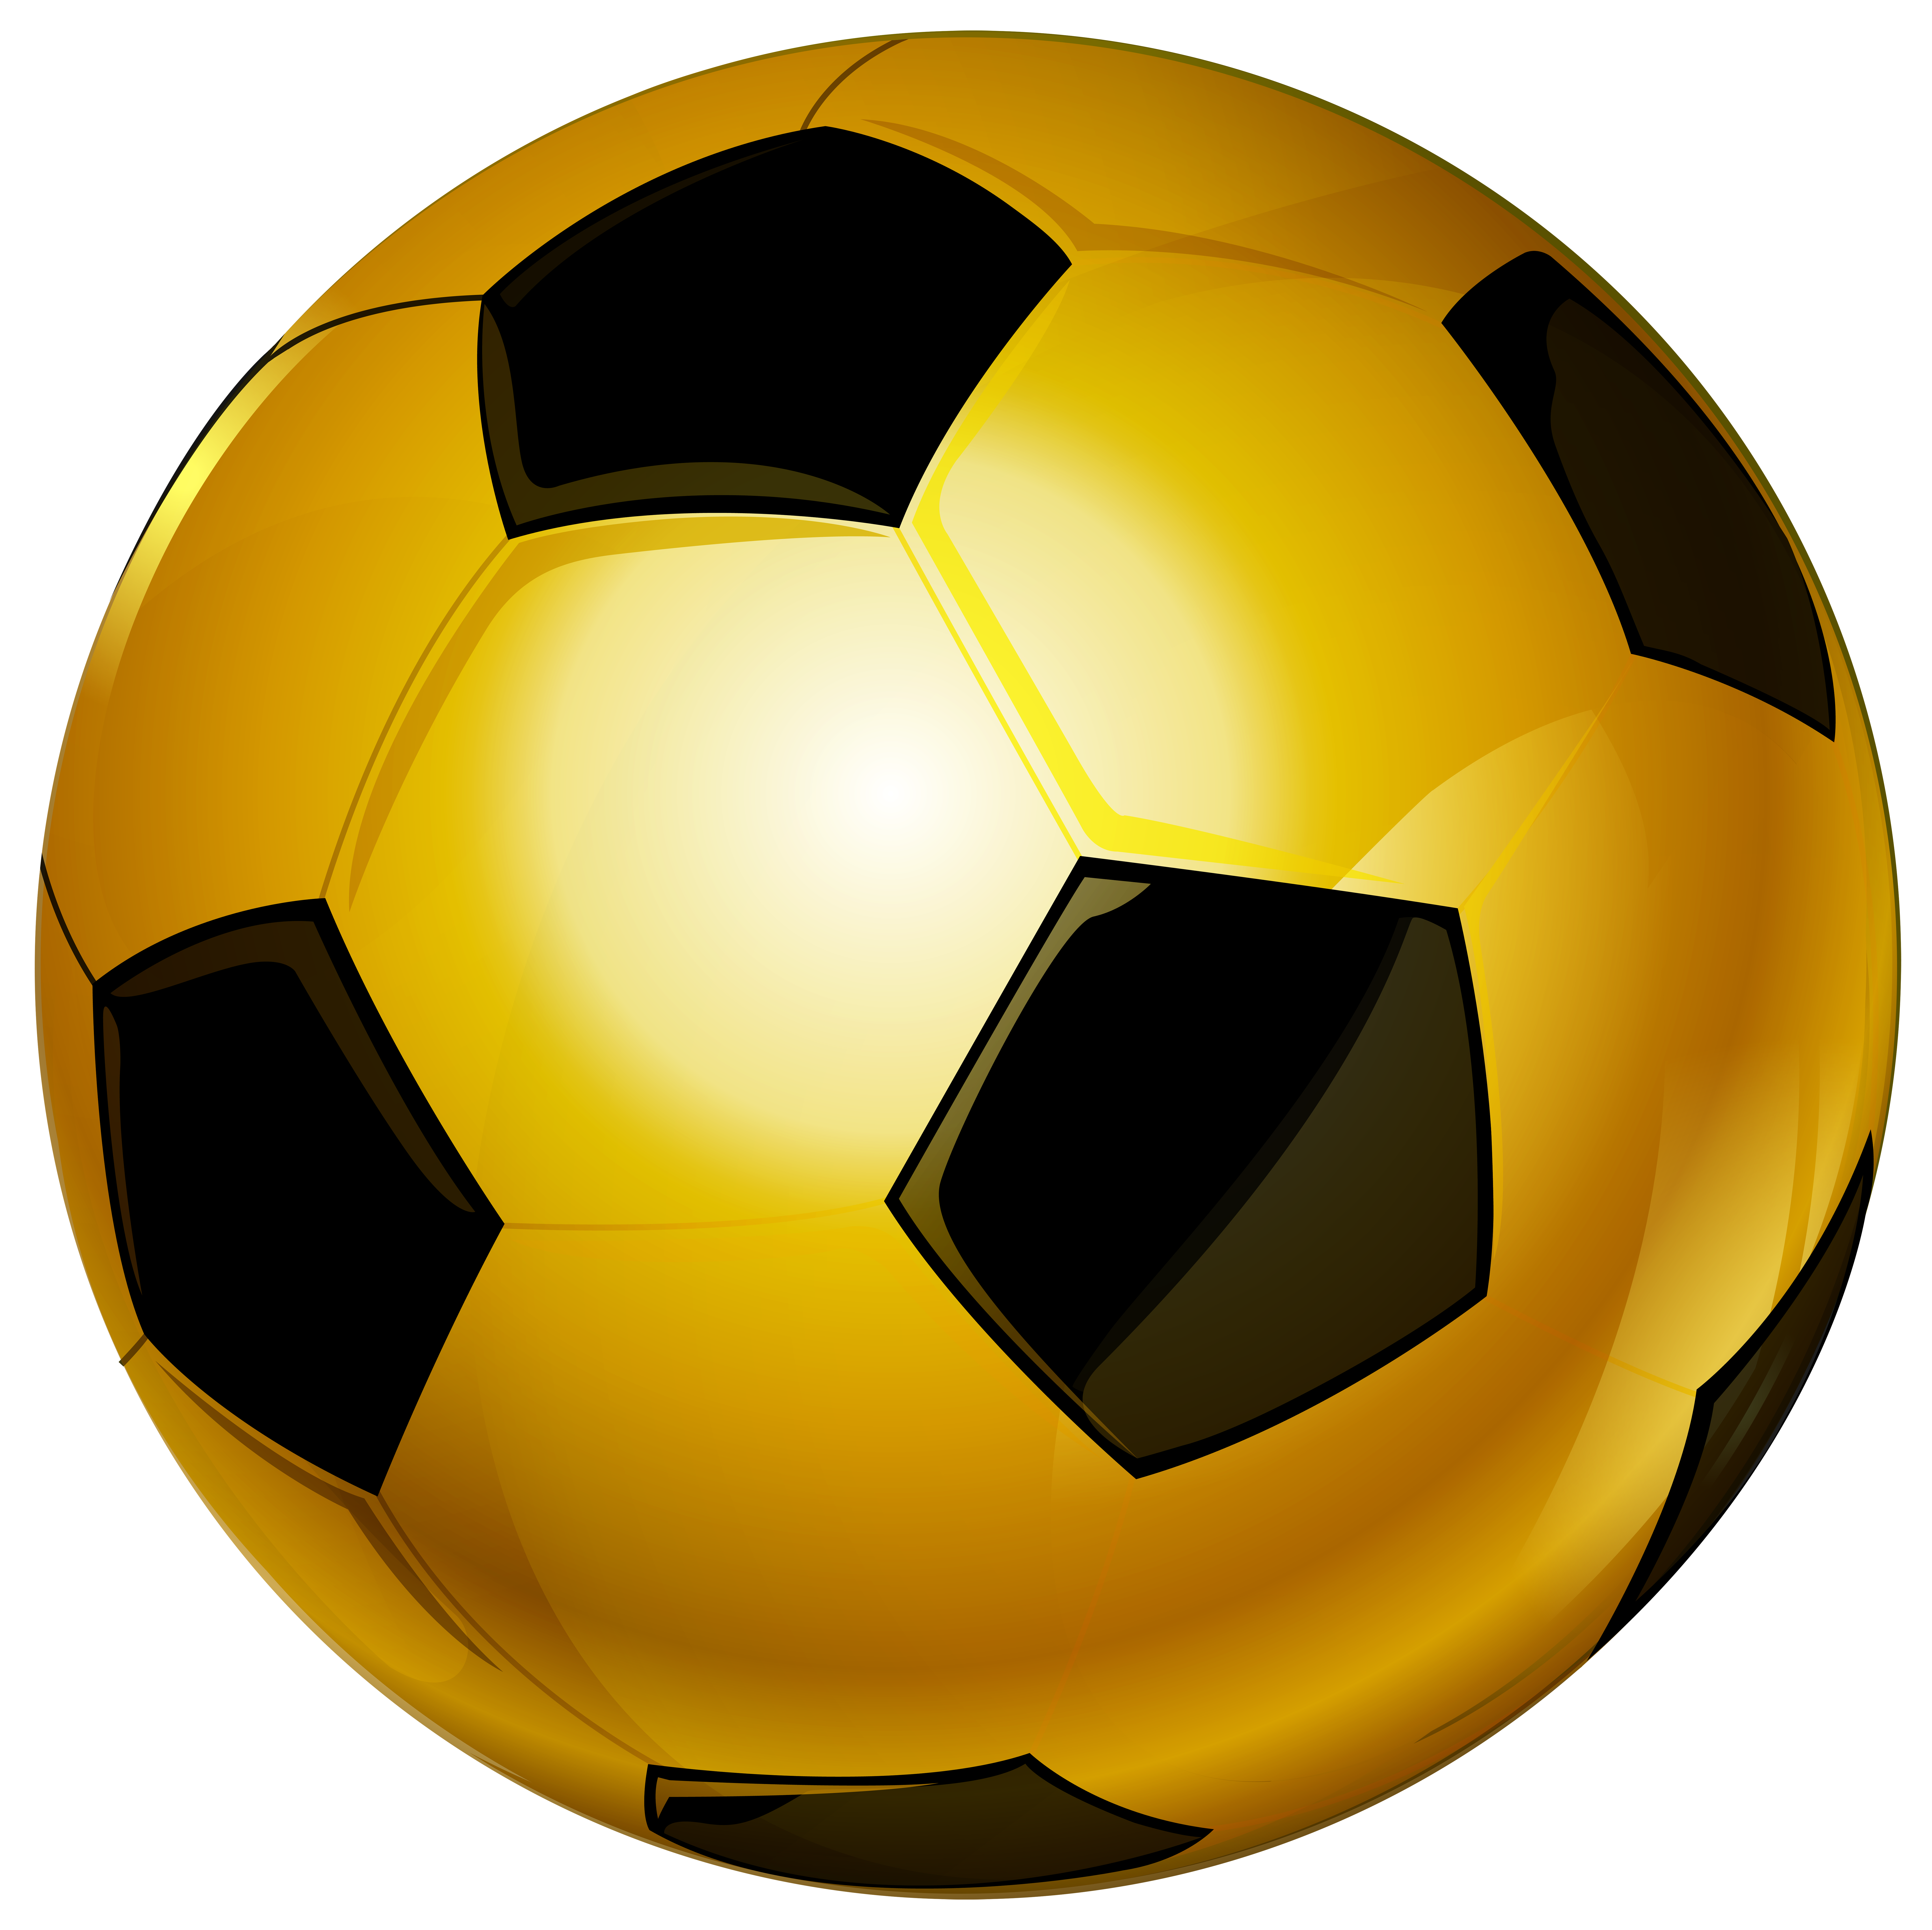 Gold Soccer Ball PNG Clip Art Image.